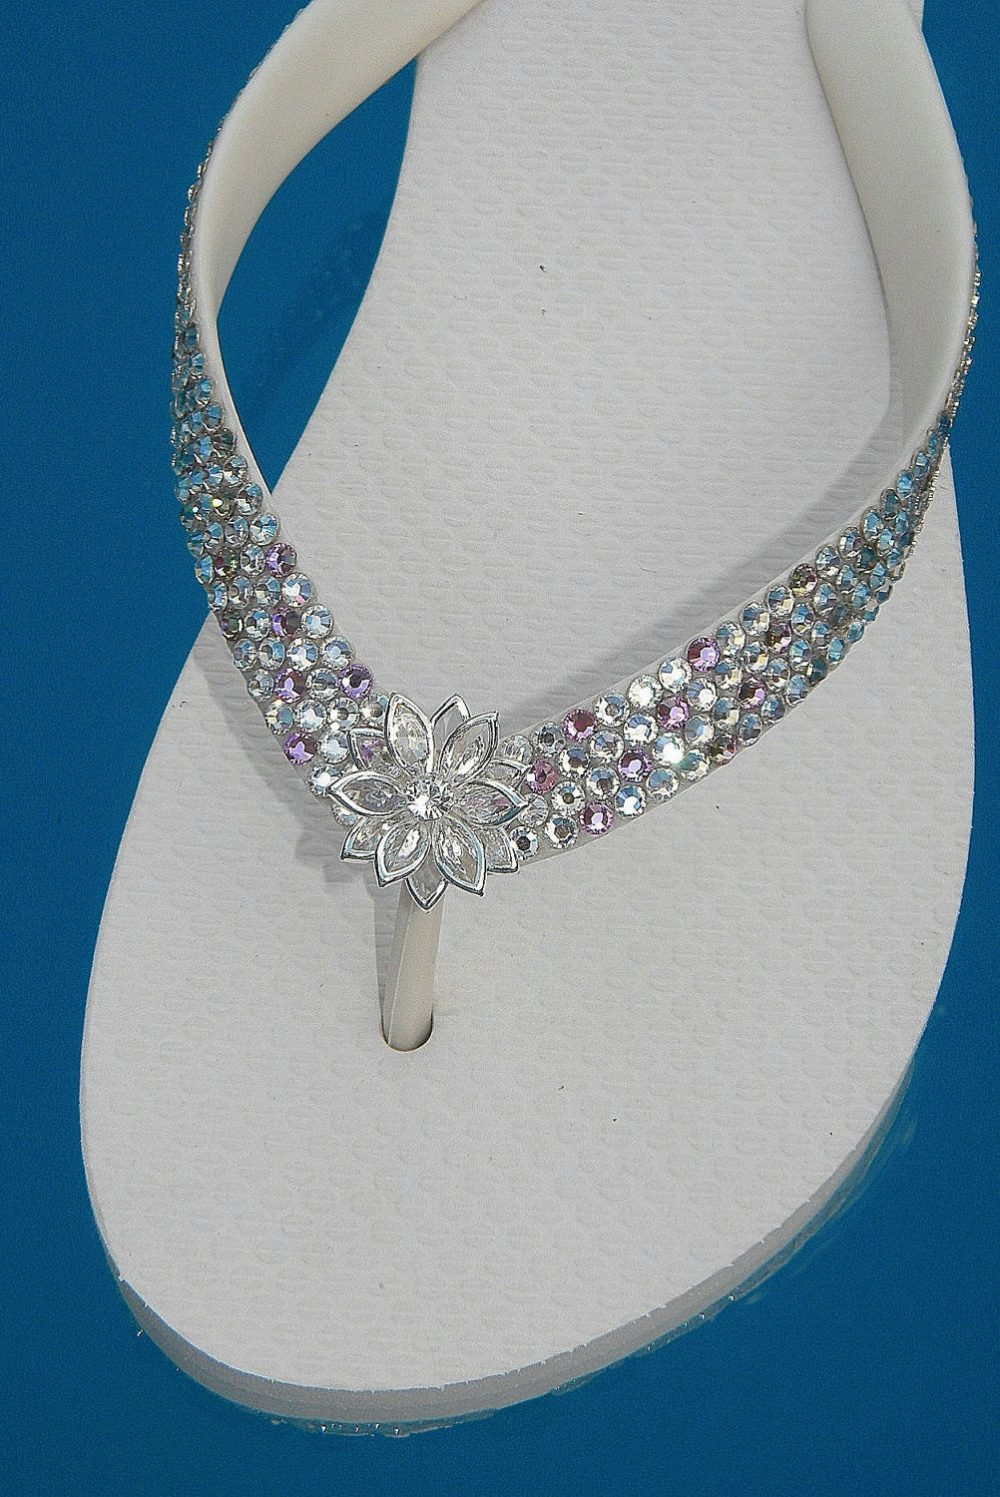 Beach Bride Flip Flops Wedding Confetti with Swarovski Crystal Bling Jewels Havaianas Flat Cariris Wedge Heel Silver Flower Bridal Gift Shoes